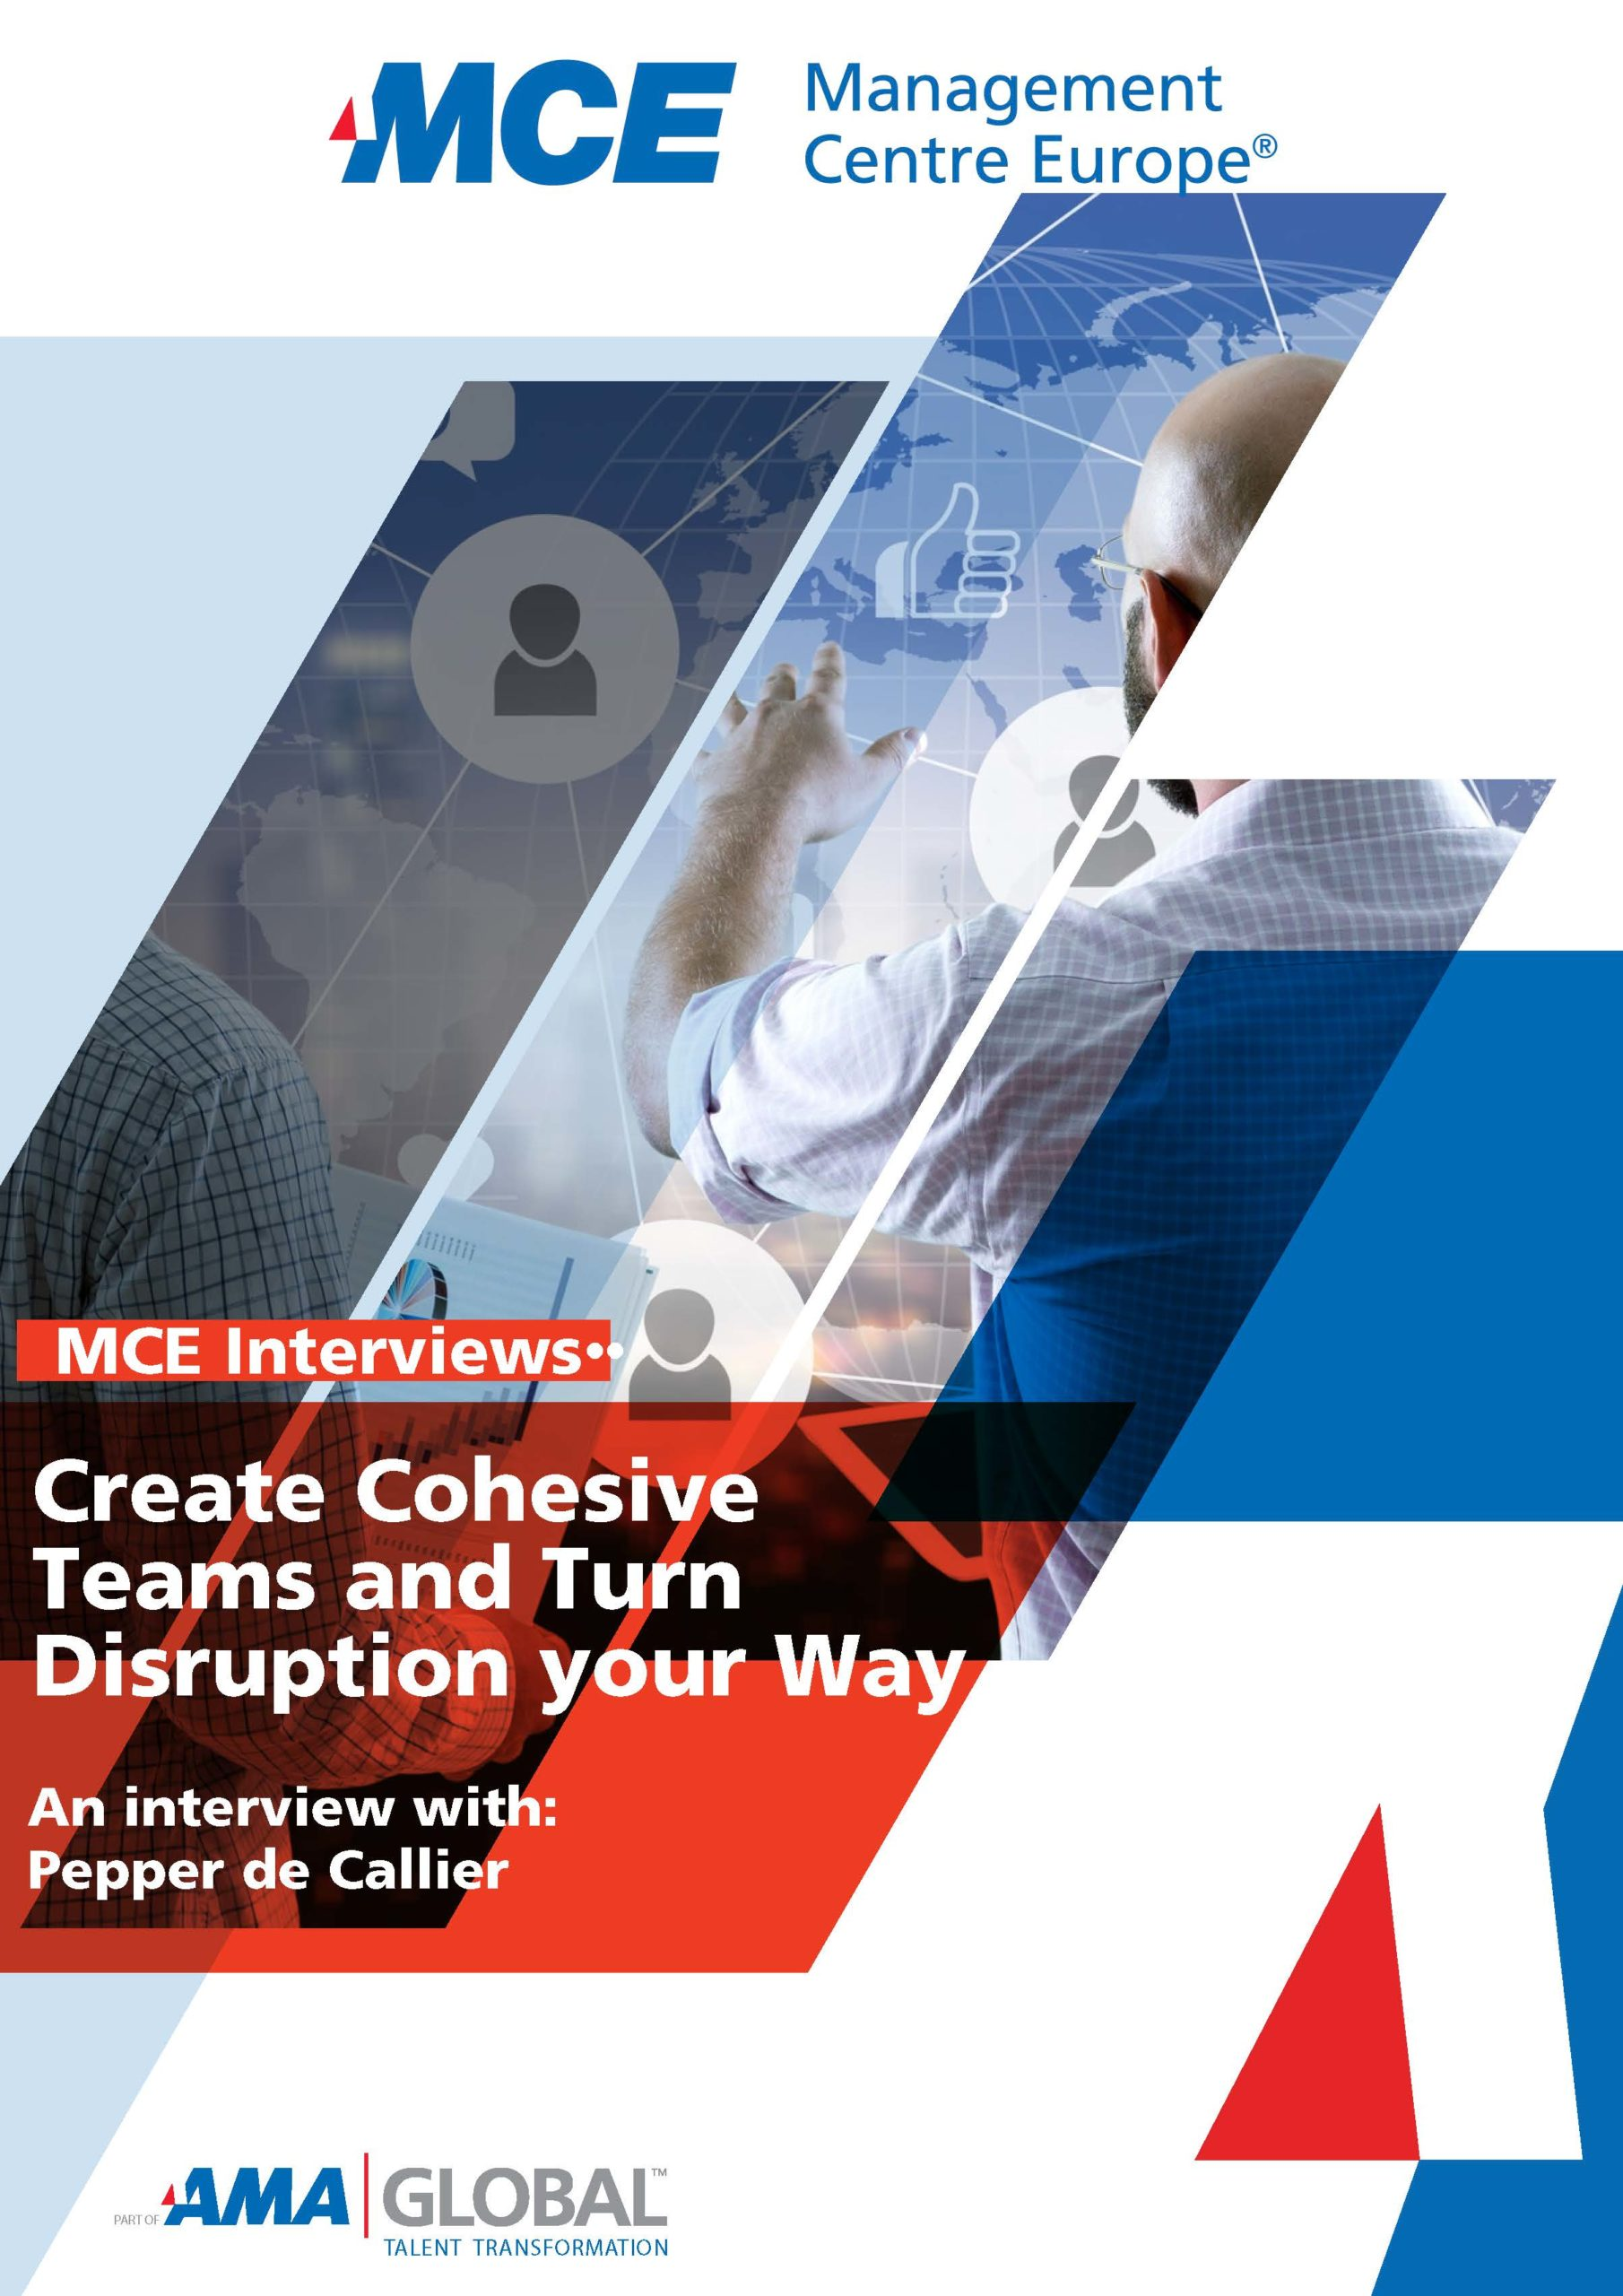 MCE Interview: Create Cohesive Teams and Turn Disruption your Way